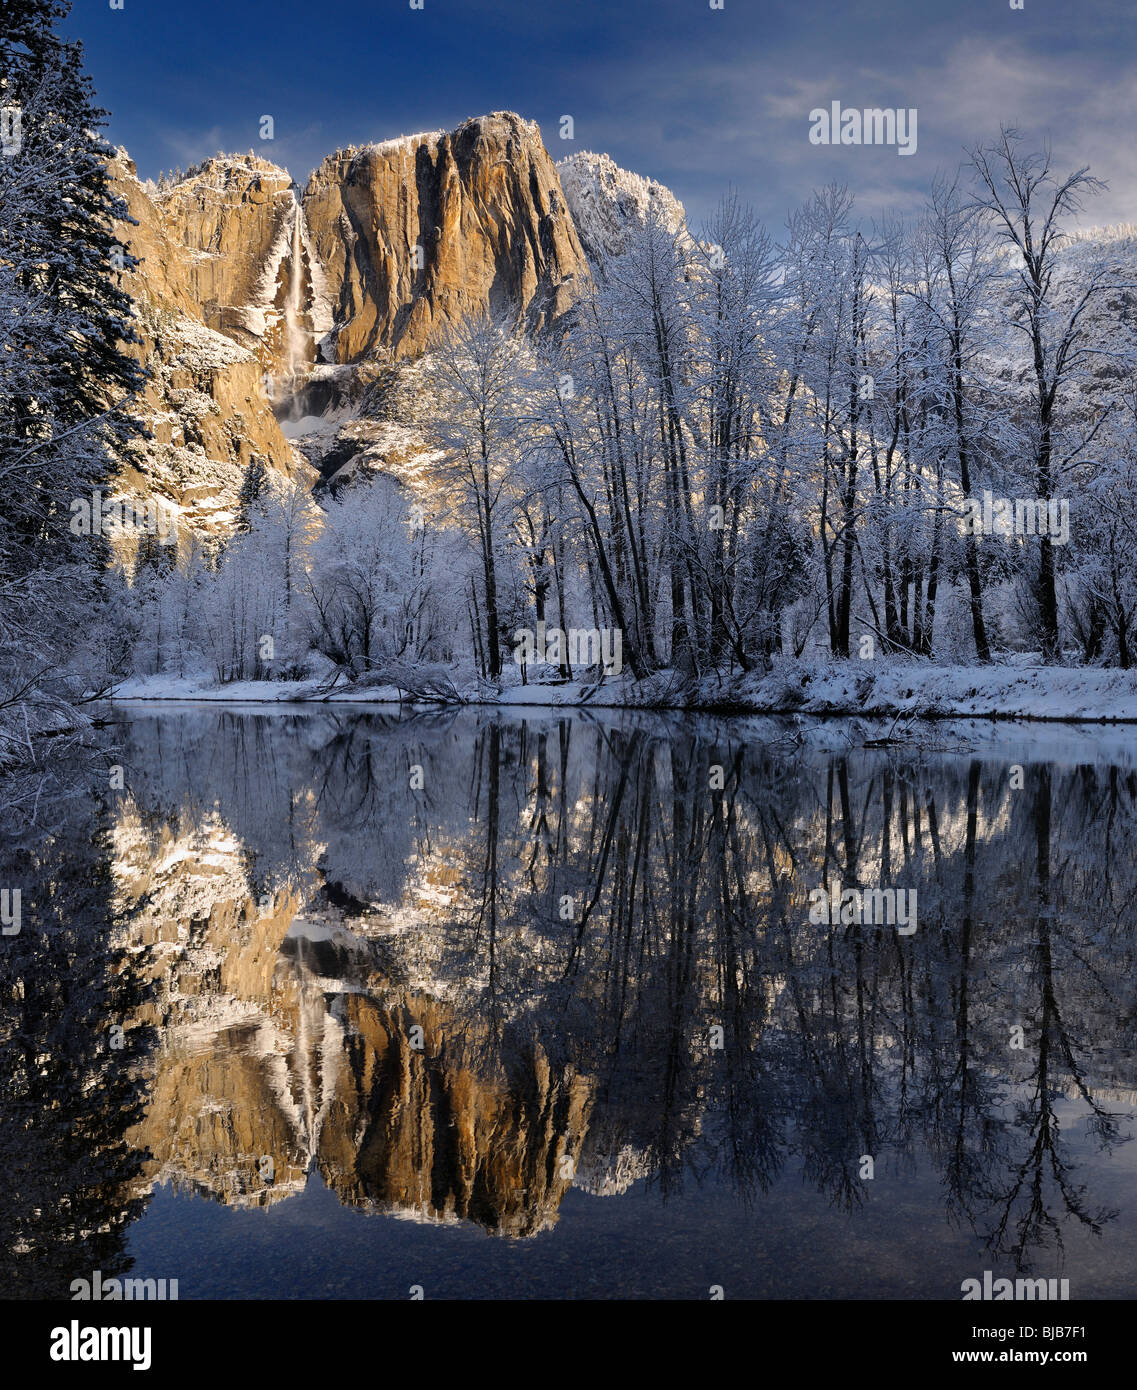 Snow covered trees and Yosemite Point and the Upper Fall reflected in the Merced River in winter Yosemite National - Stock Image